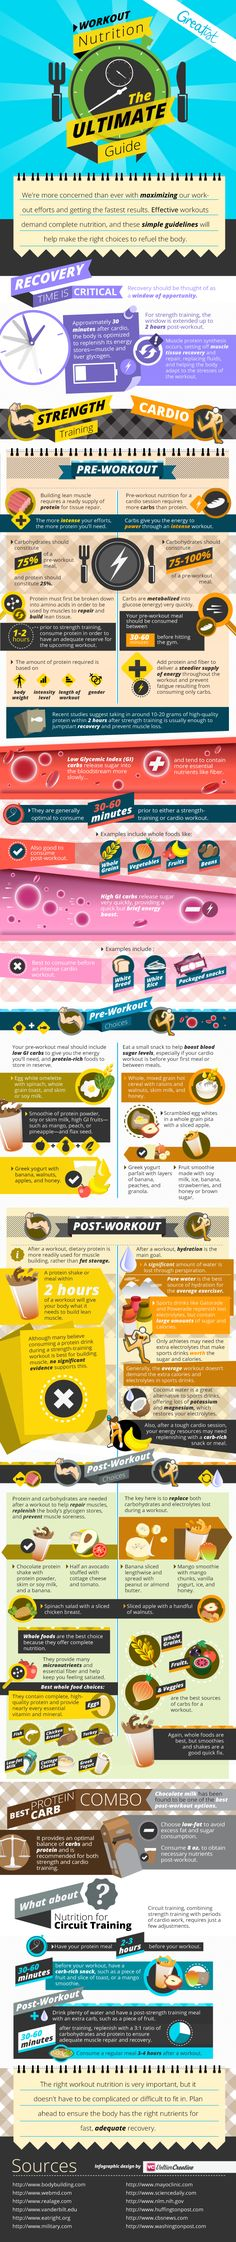 The Complete Guide to #Workout #Nutrition #Infographic